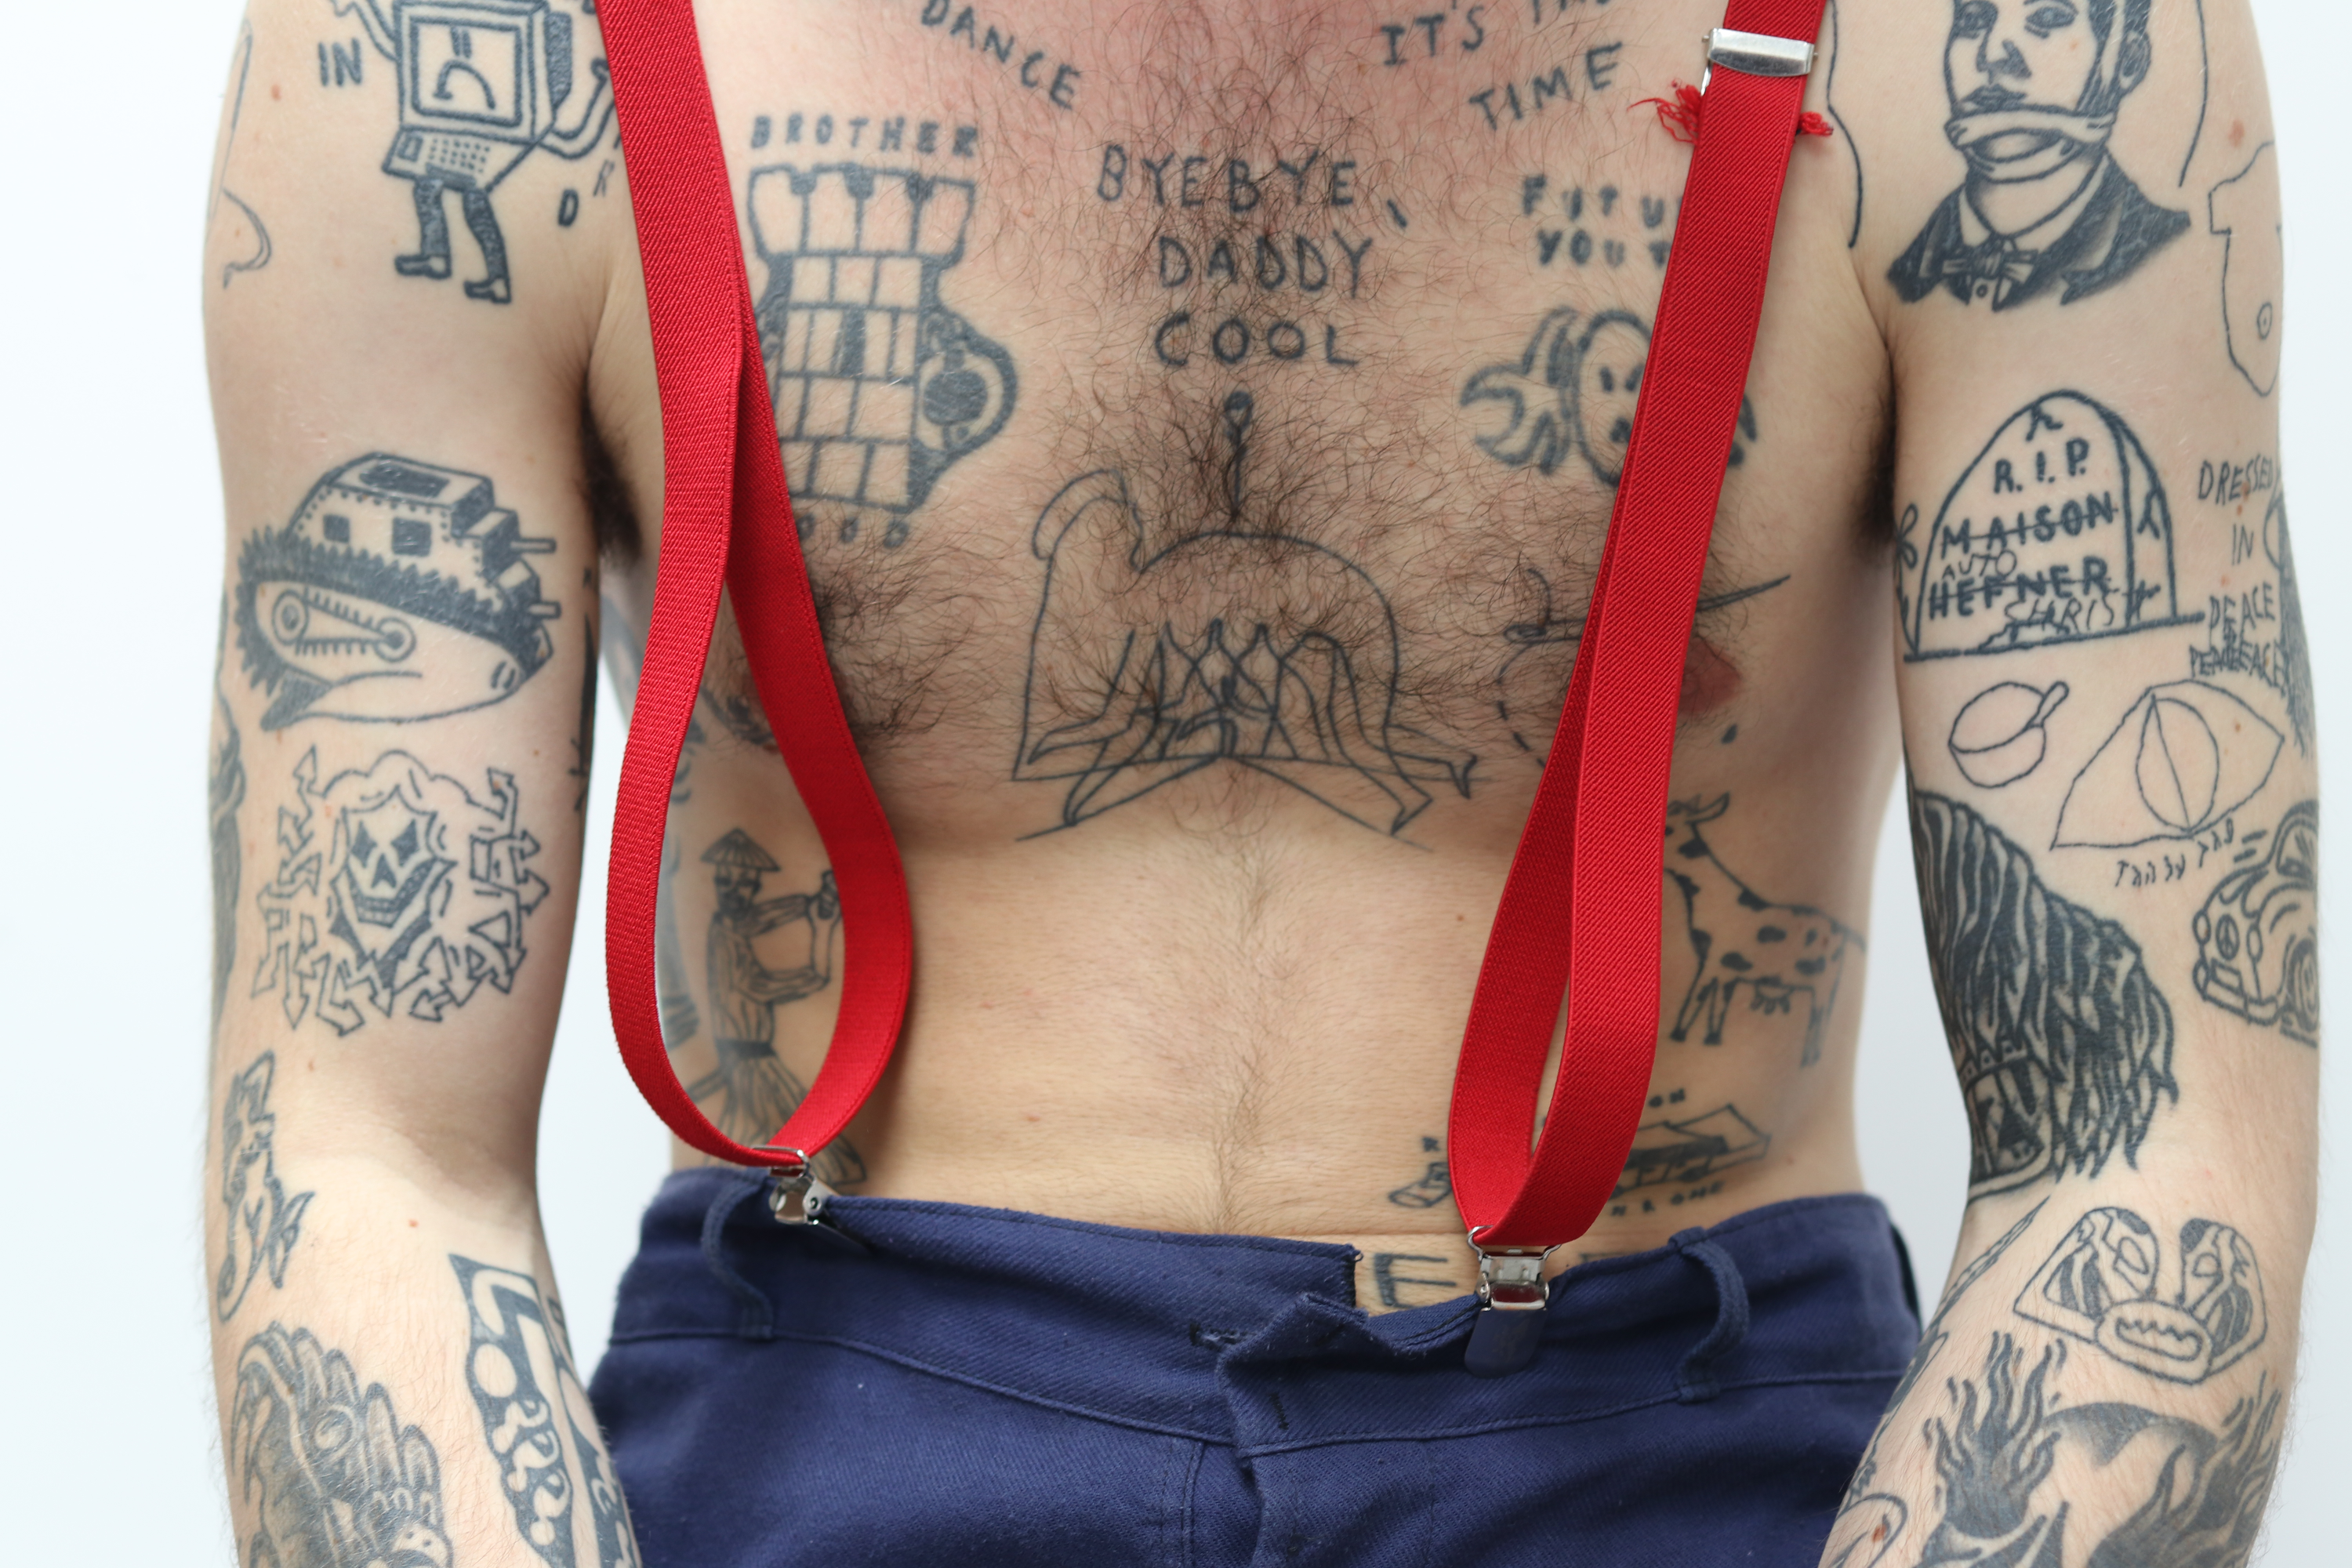 be7b23864 Graffiti taught Monty the non-technical skills of tattooing – to take  risks, to stand by his work – but marking walls was temporary, unlike skin,  ...